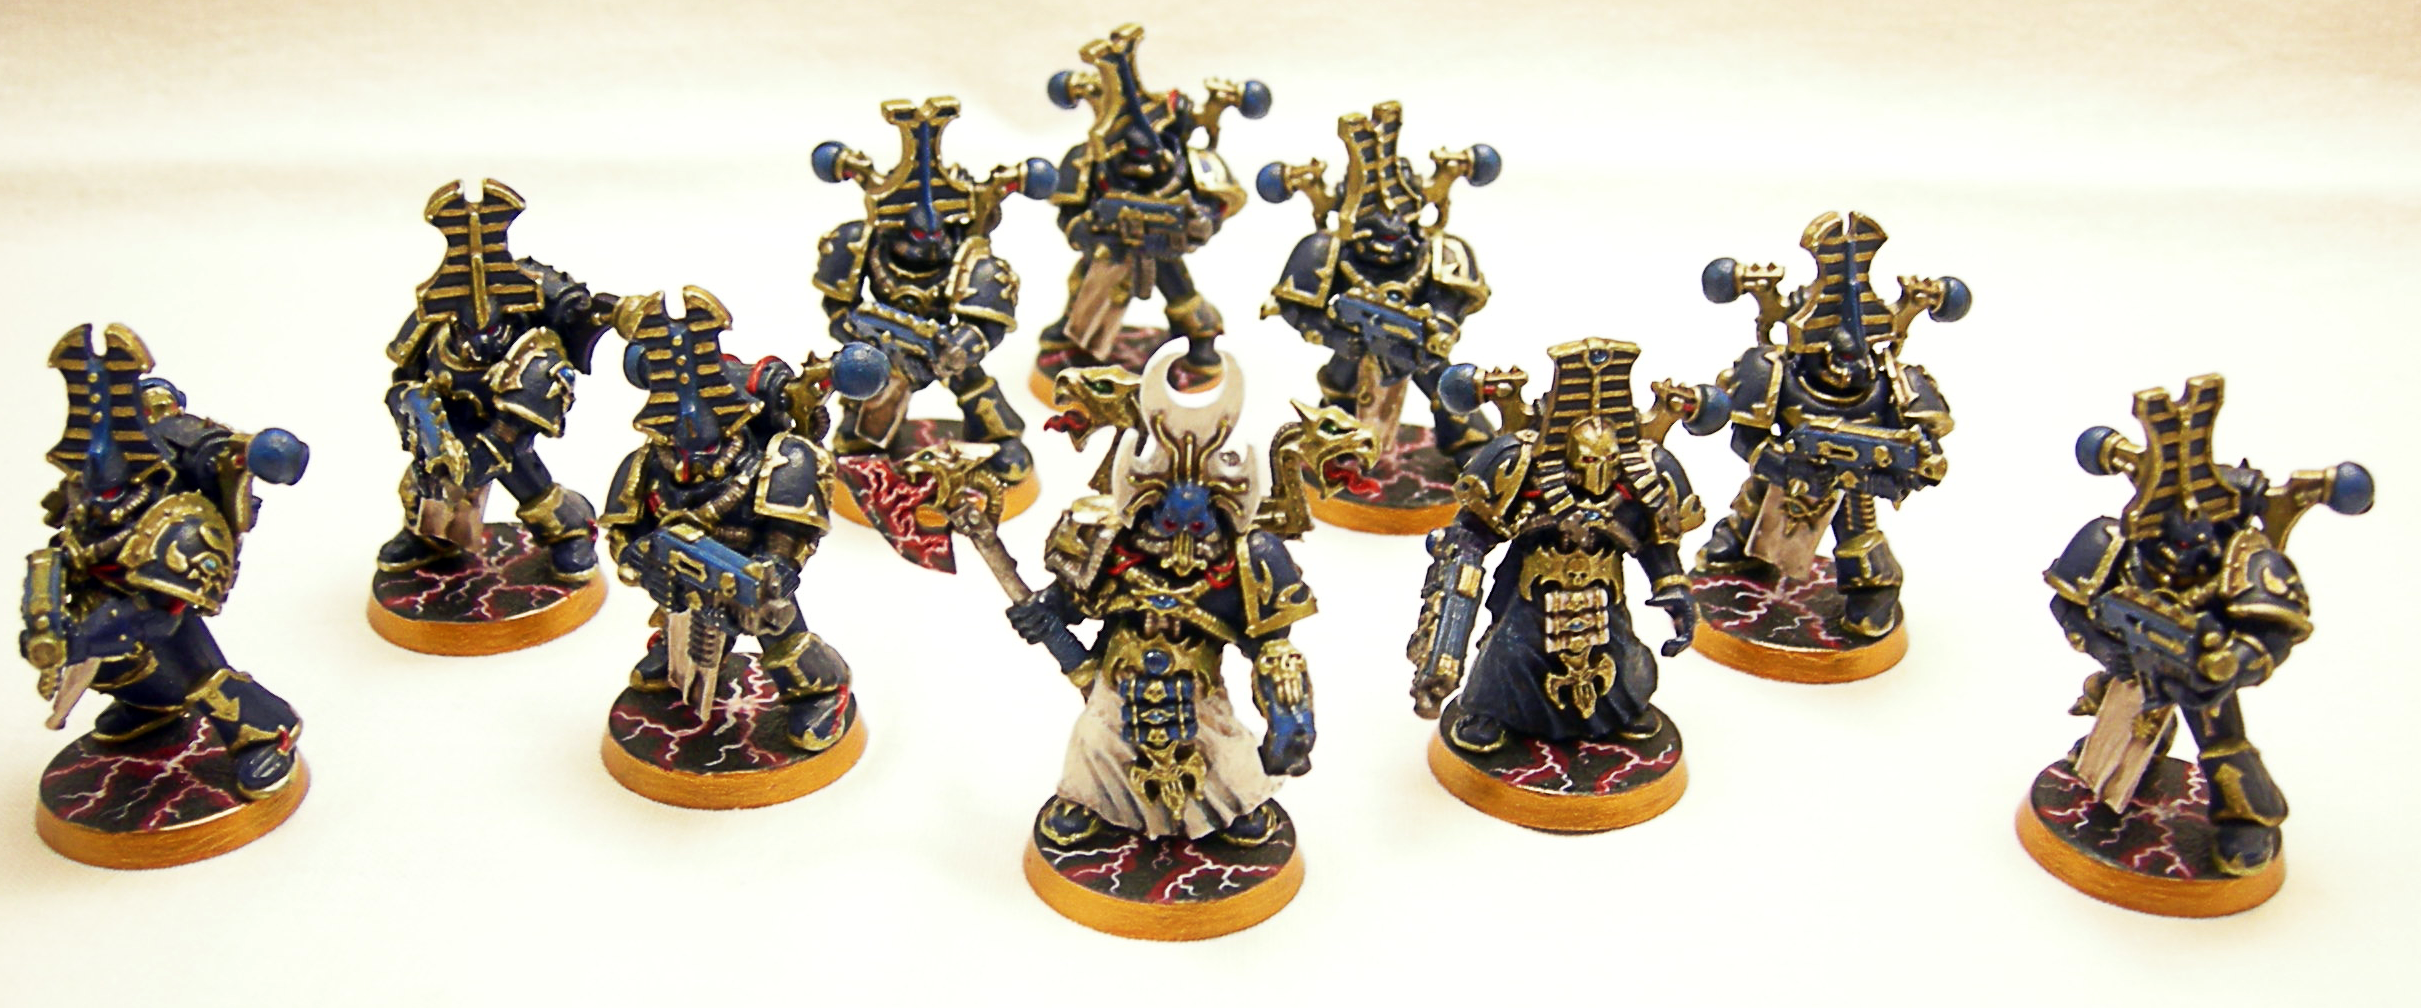 28mm, Based, Bolters, Boltgun, Chaos Space Marines, Elites, Force Weapon, Games Workshop, Painted, Psyker, Rubric, Rubrics, Space Marines, Sword, Thousand Sons, Troops, Tzeentch, Warhammer 40,000